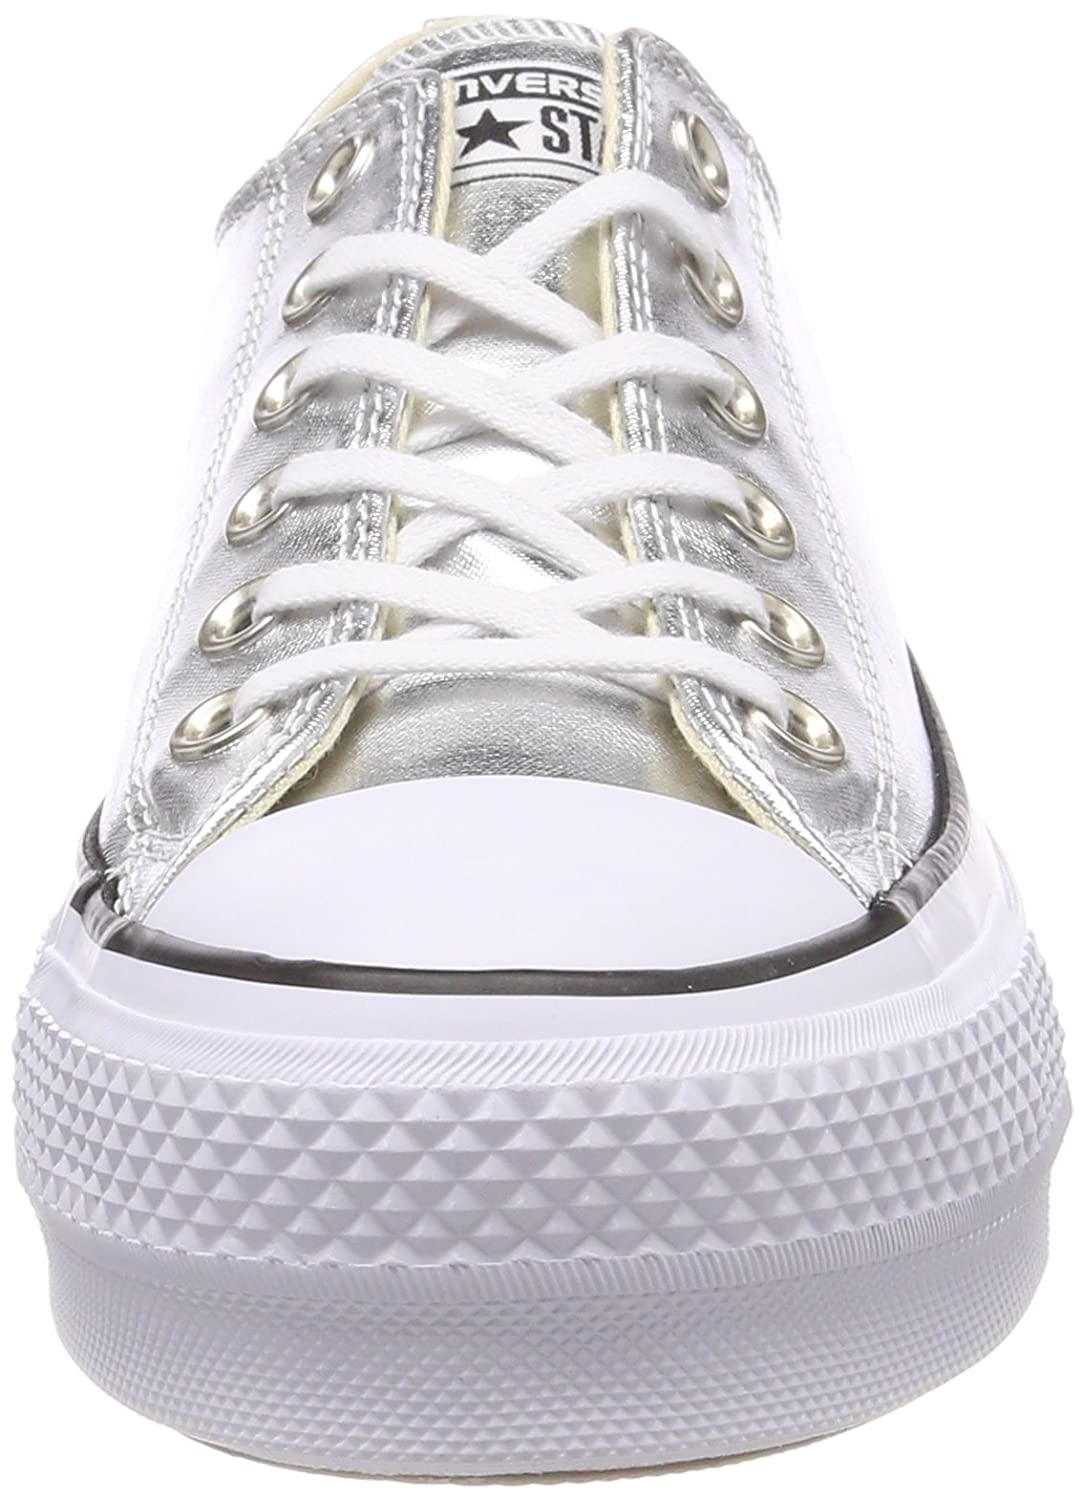 Converse Women's Chuck Taylor All Star Lift Ox Casual Shoe B073C7D633 10 B(M) US|Silver/Black/White